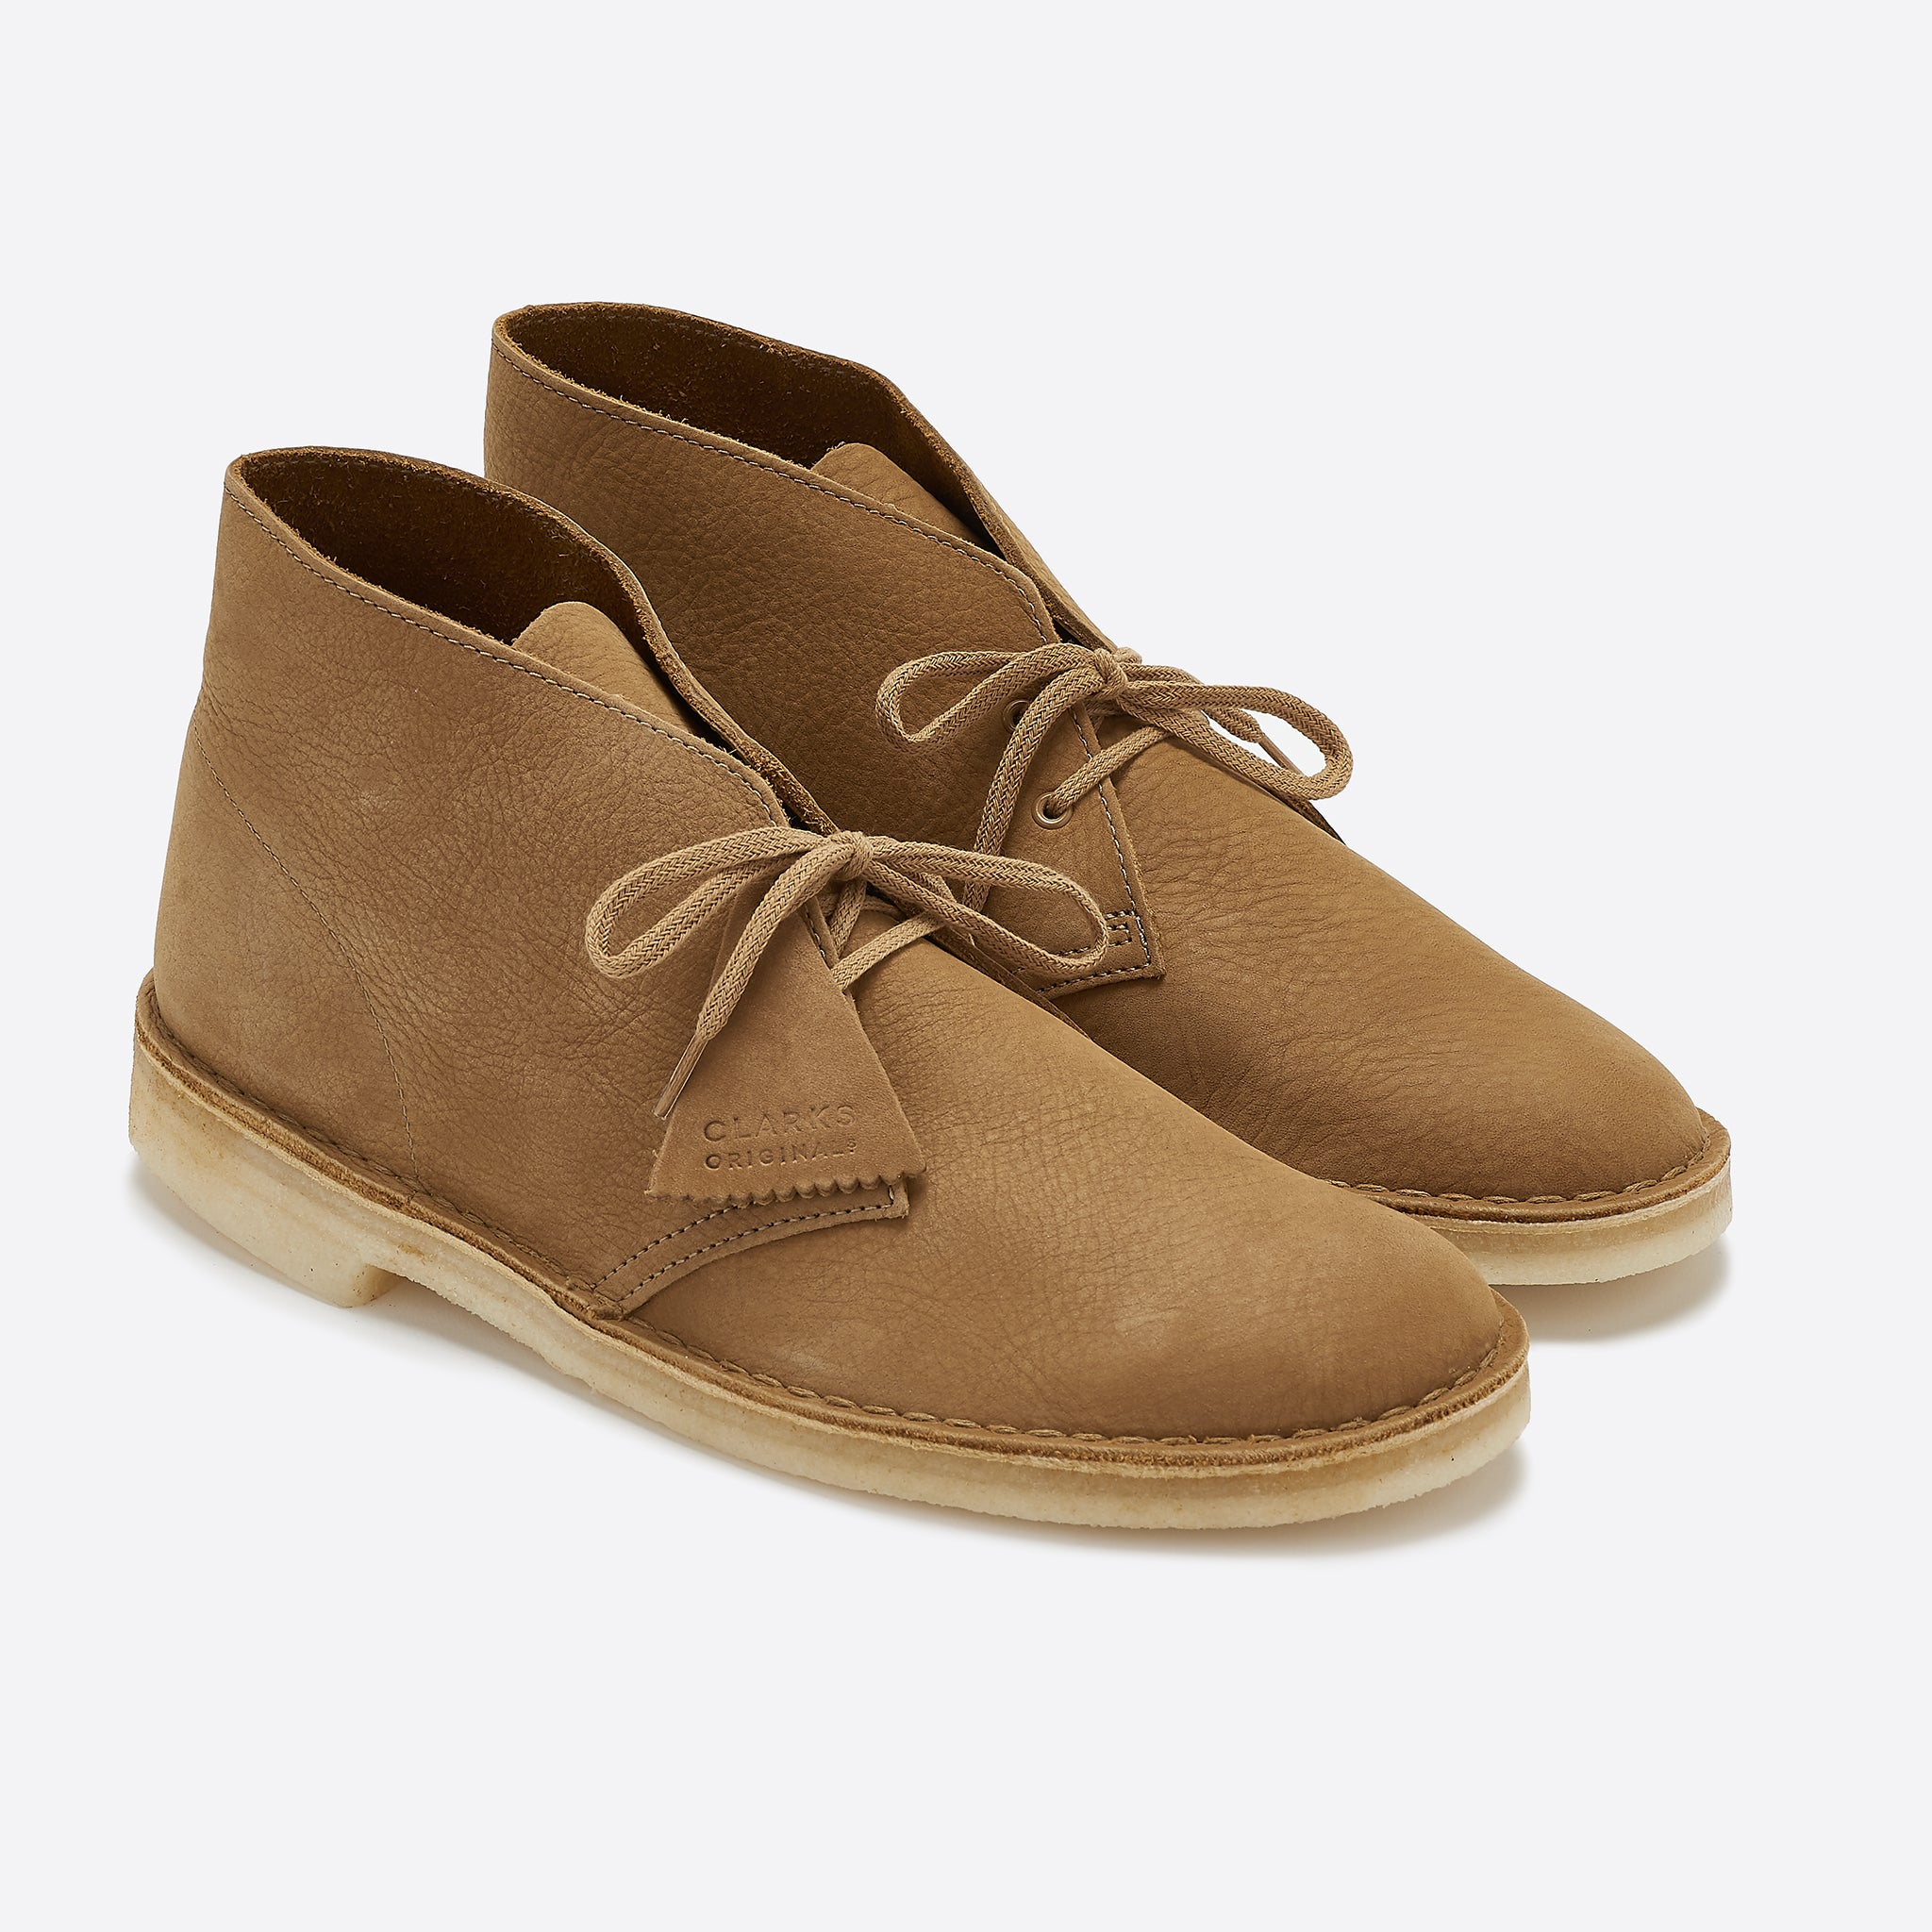 Clarks Originals Desert Boot in Oak